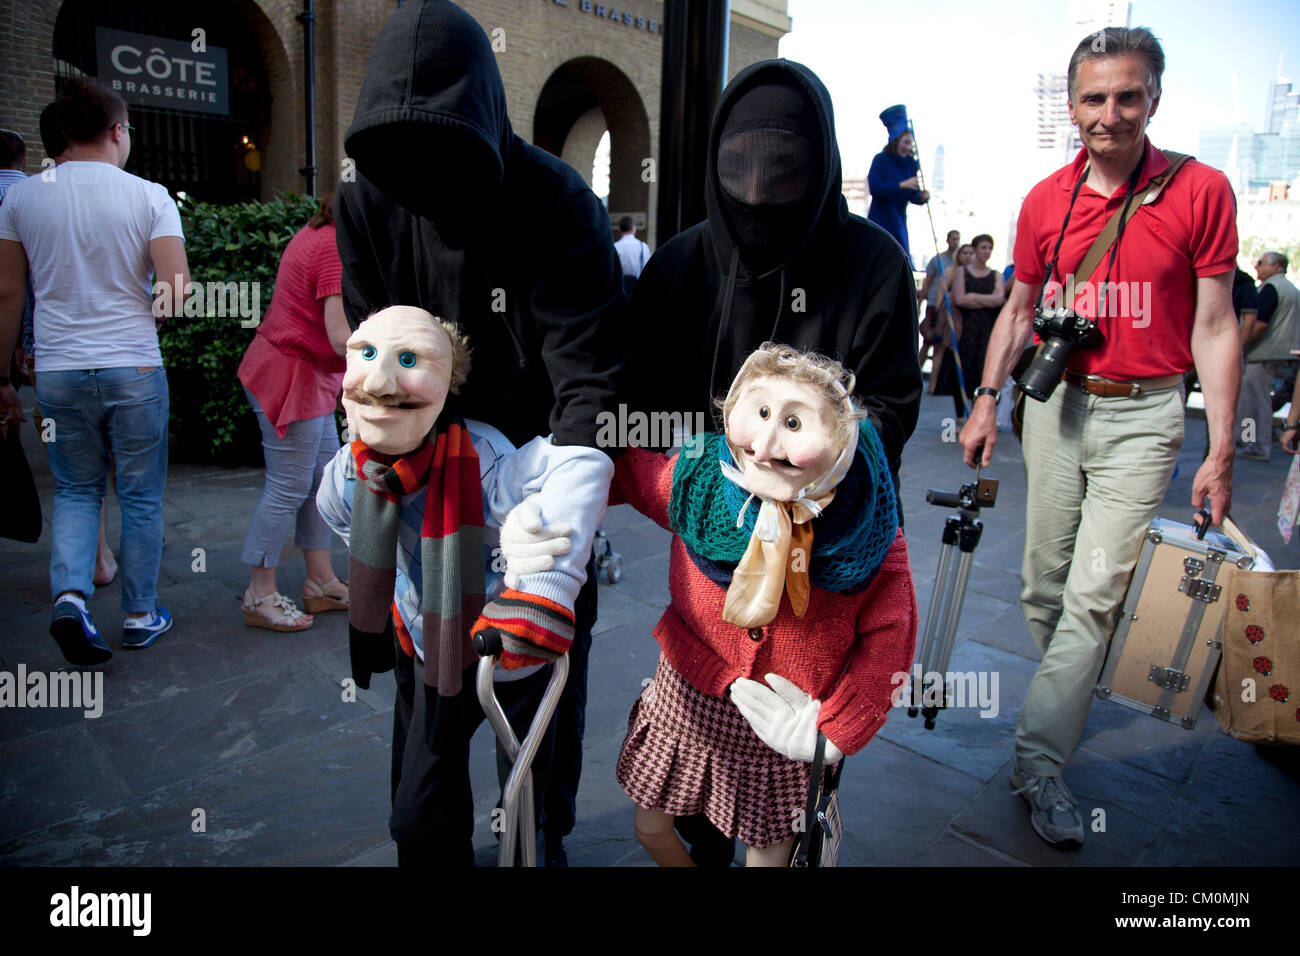 London, UK. 8th September, 2012. Never Too Old... a puppet show where an elderly couple walk around interracting - Stock Image